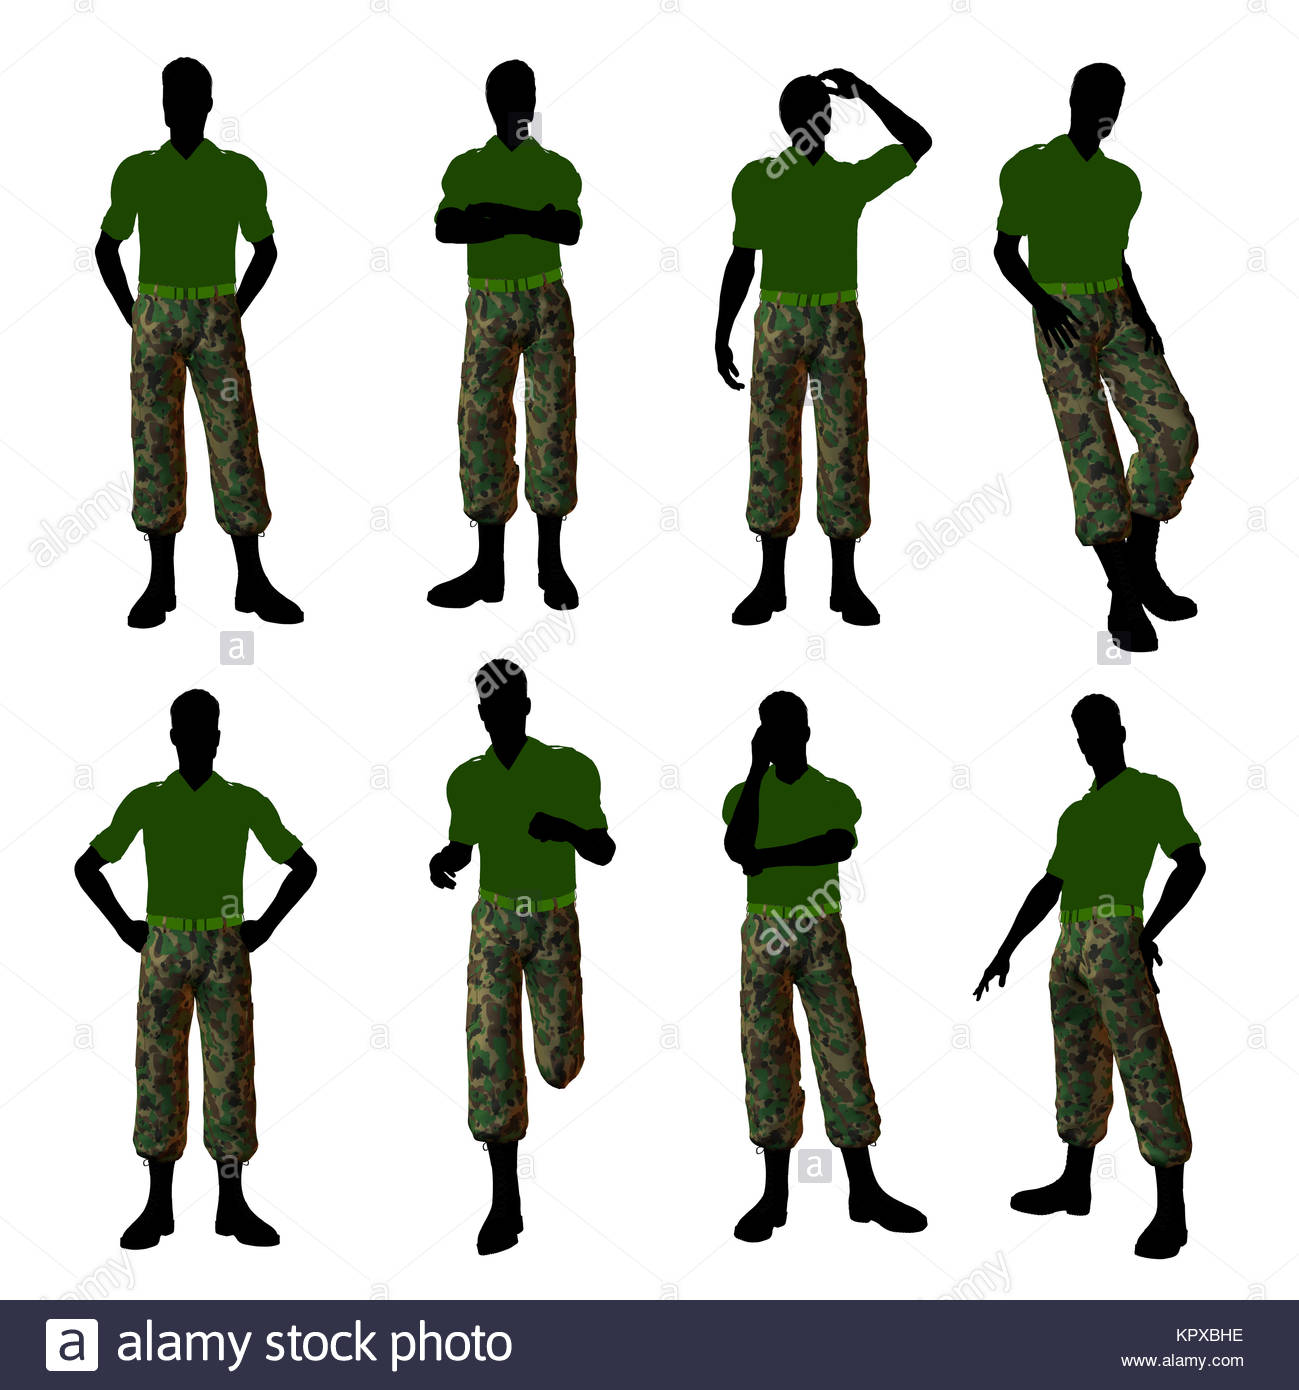 1299x1390 Male Soldier Dressed In Camouflage Illustration Silhouette Stock